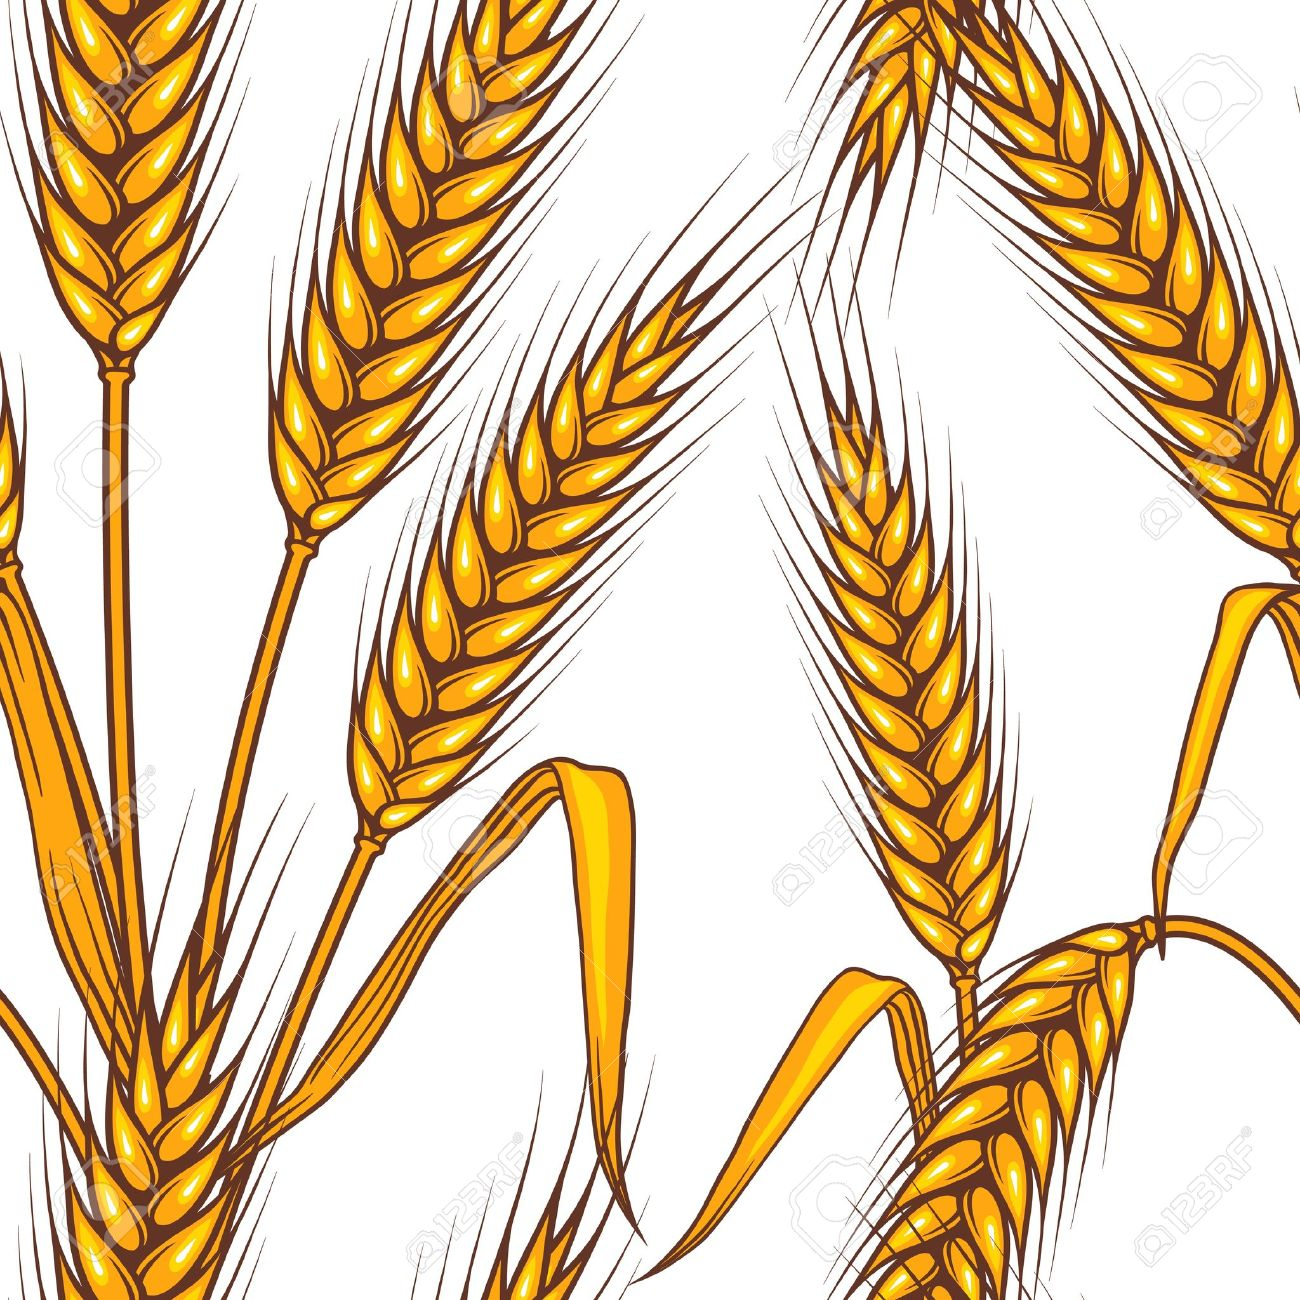 Barley Clipart - Clipart Suggest